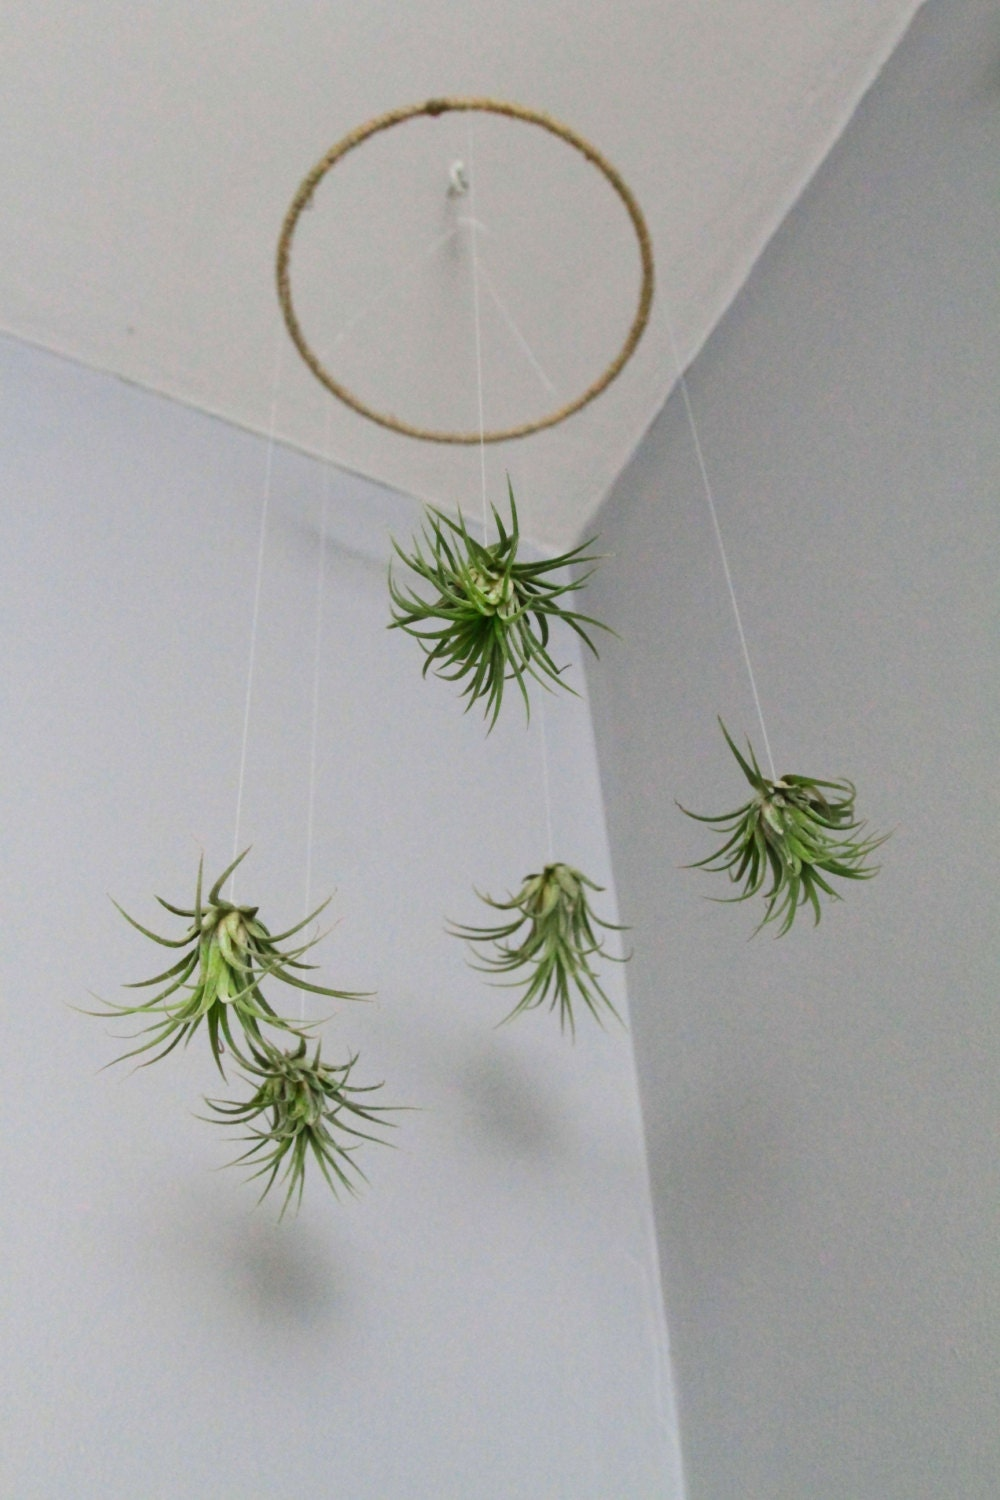 air plant mobile natural living decor home decor